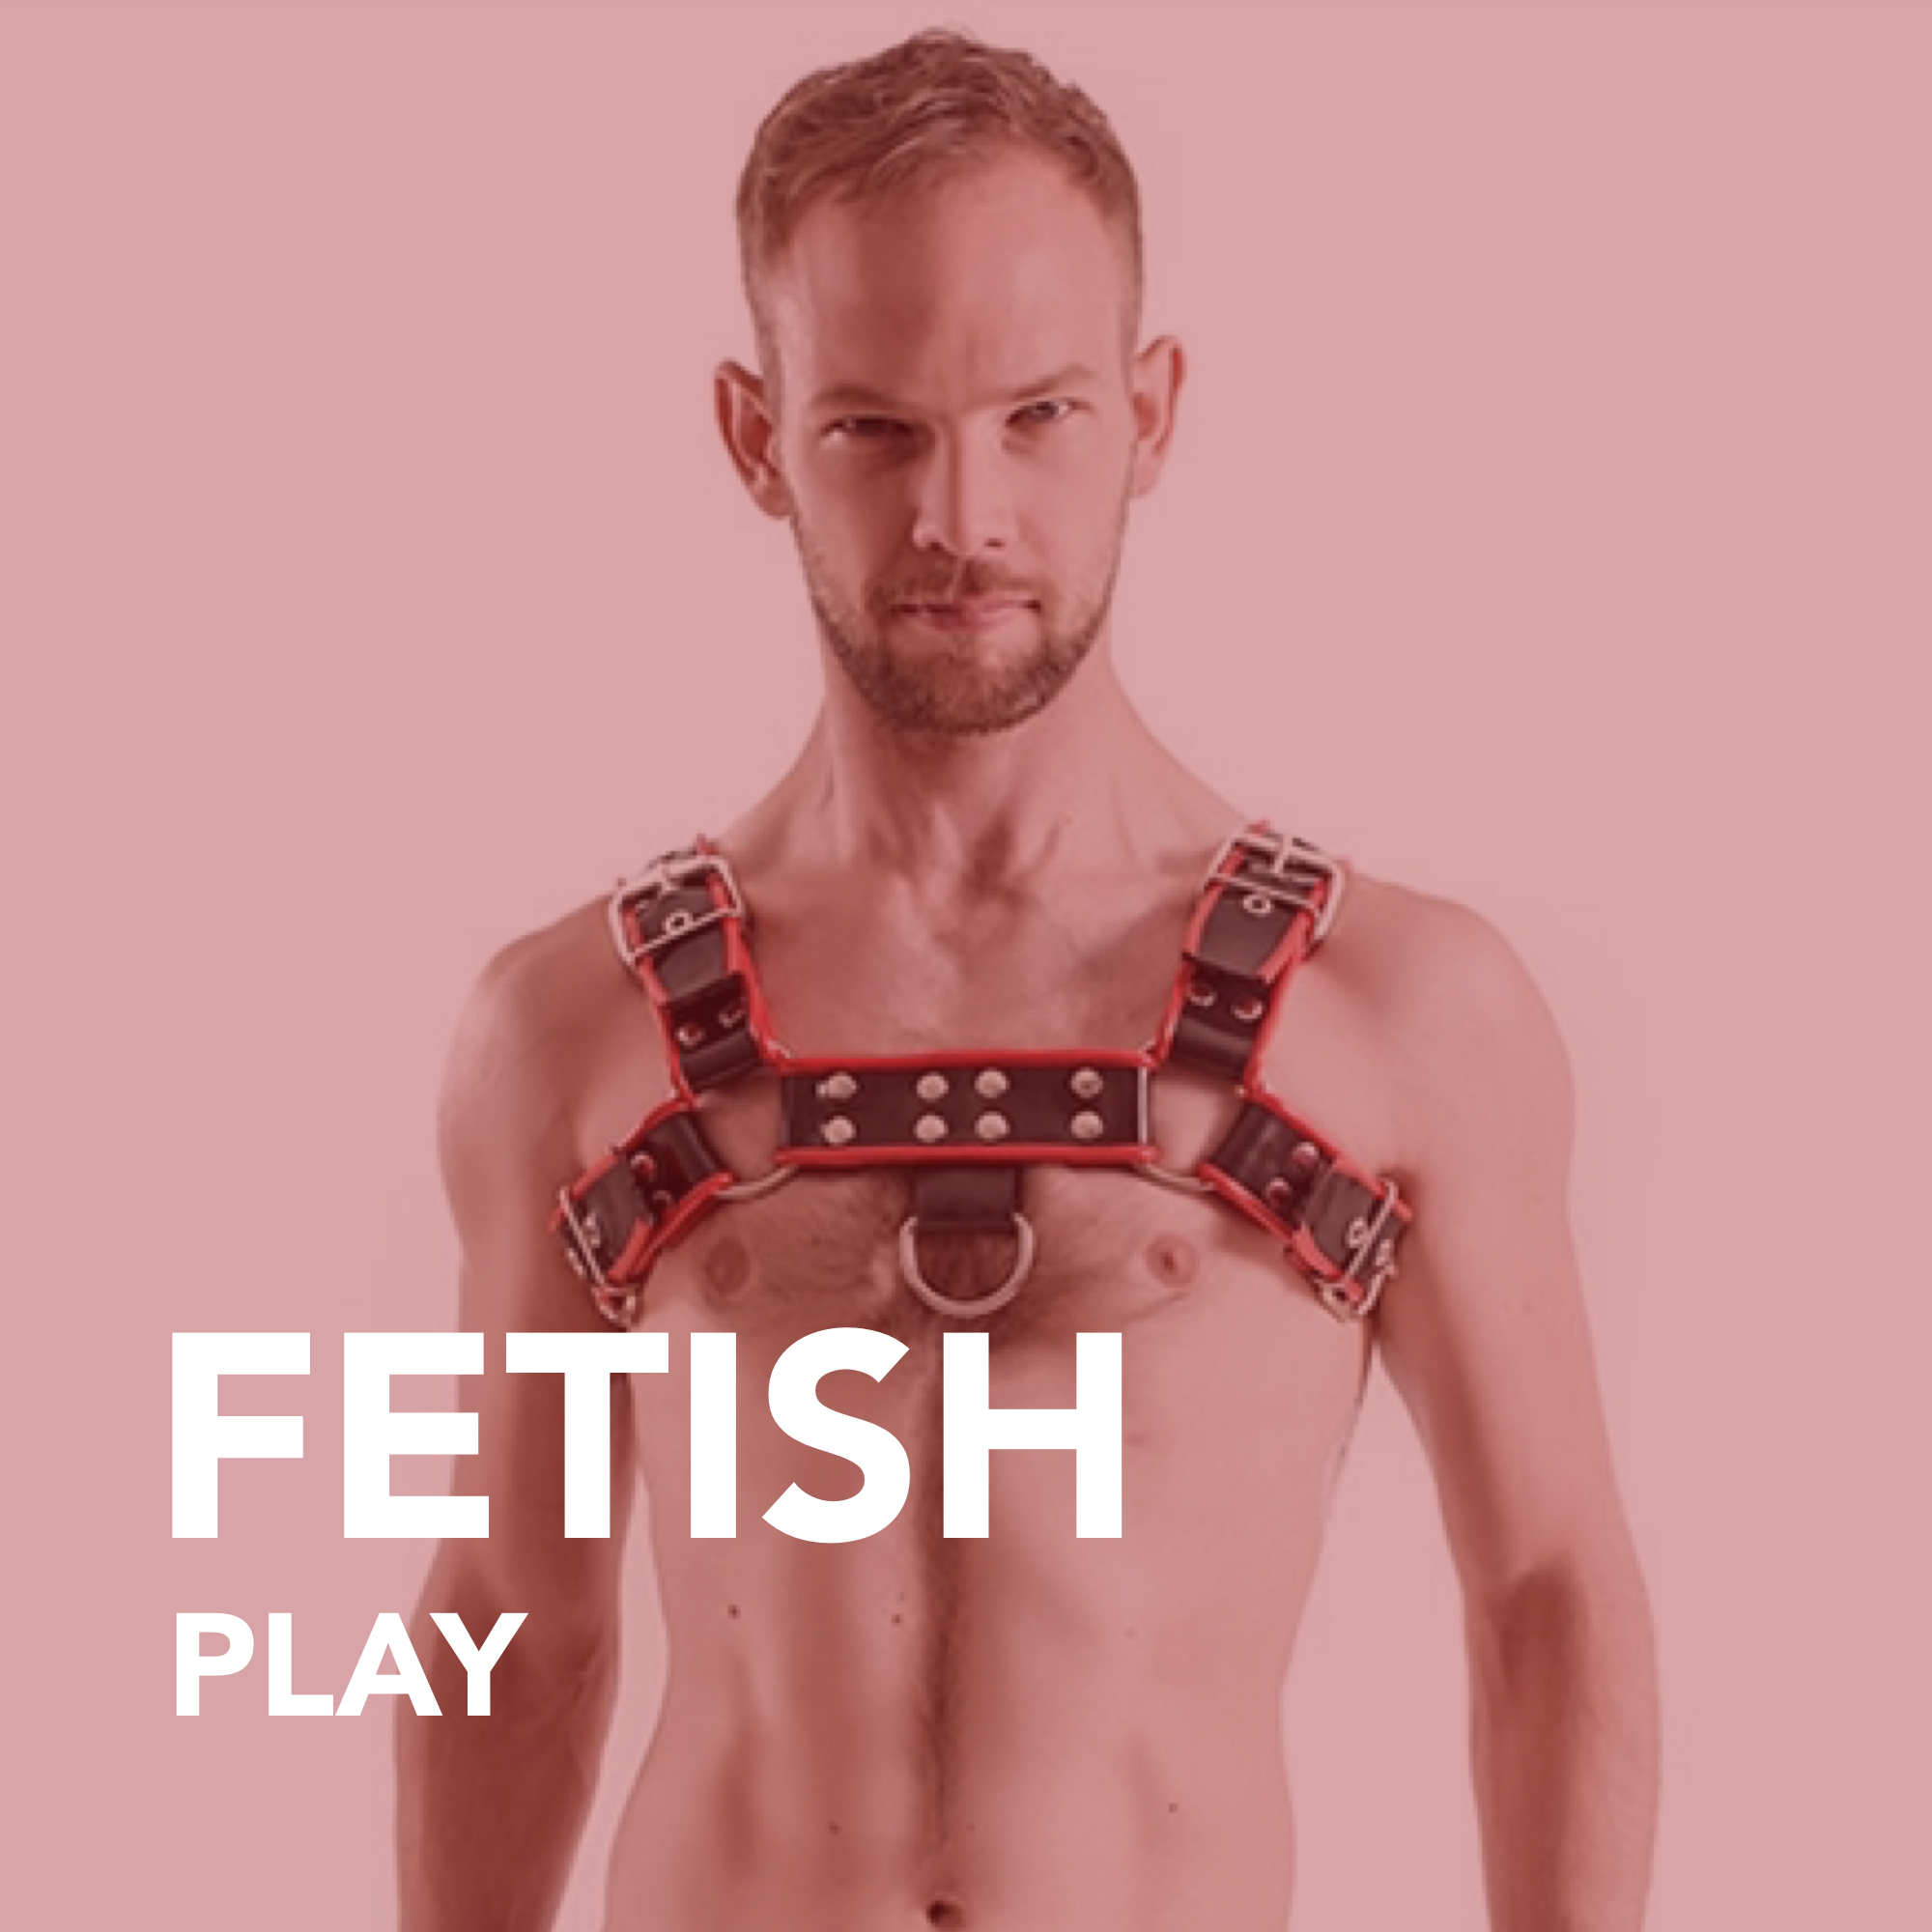 Gay fetish gear